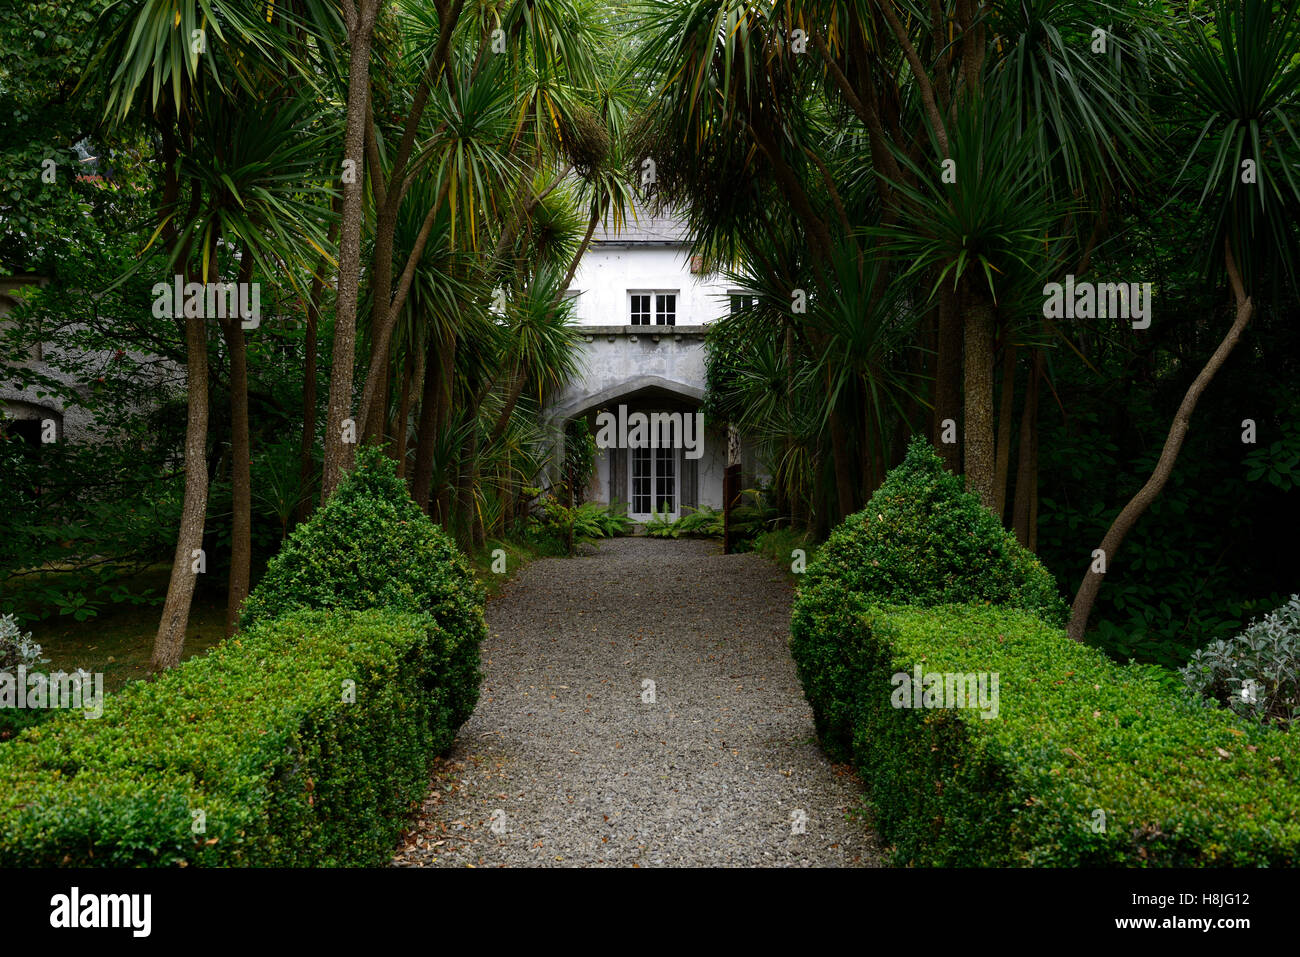 Box hedge topiary parterre clipped neat hedging garden design formal Corke Lodge Bray Wicklow Ireland RM Floral - Stock Image